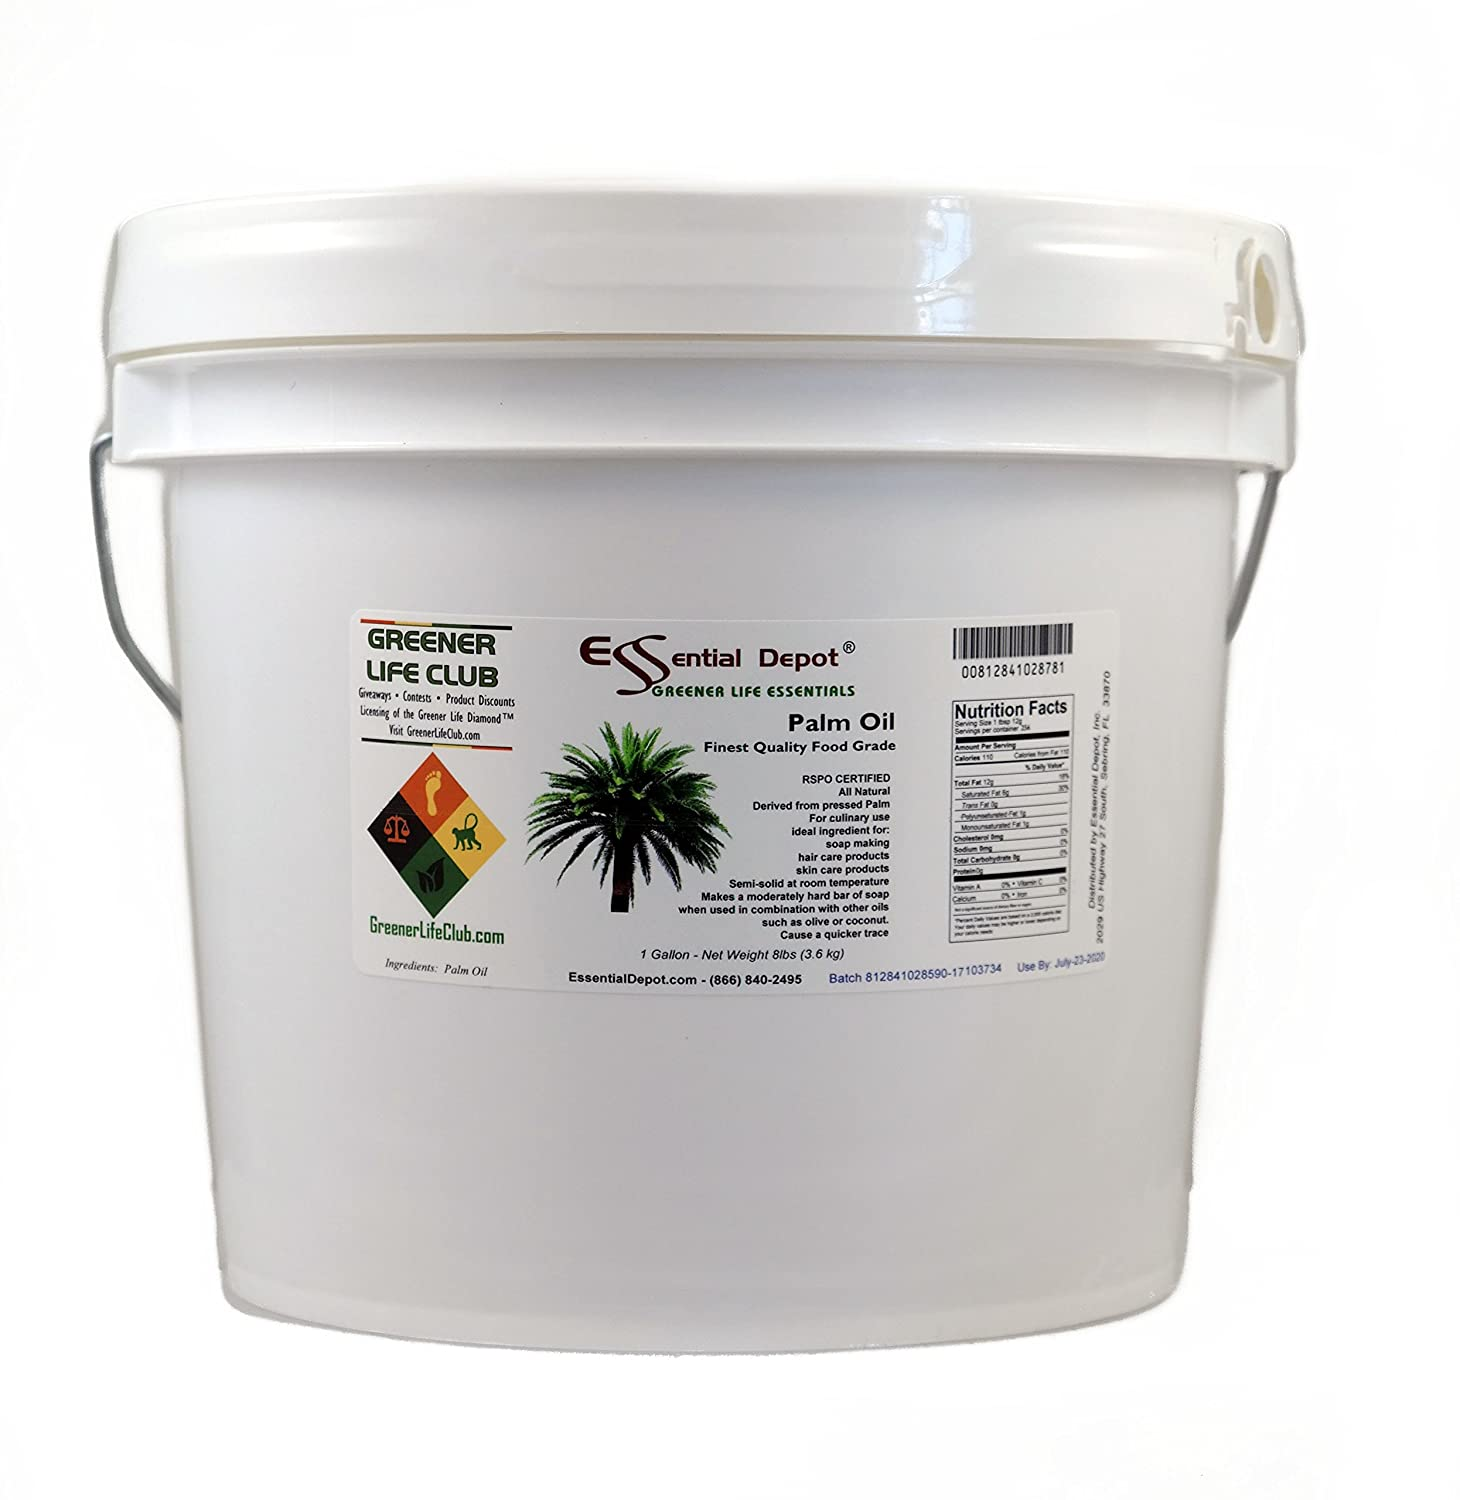 Essential Depot Palm Oil - RSPO Certified - Food Safe - Finest Quality - 8 lbs - in Pail - 1 Gallon.